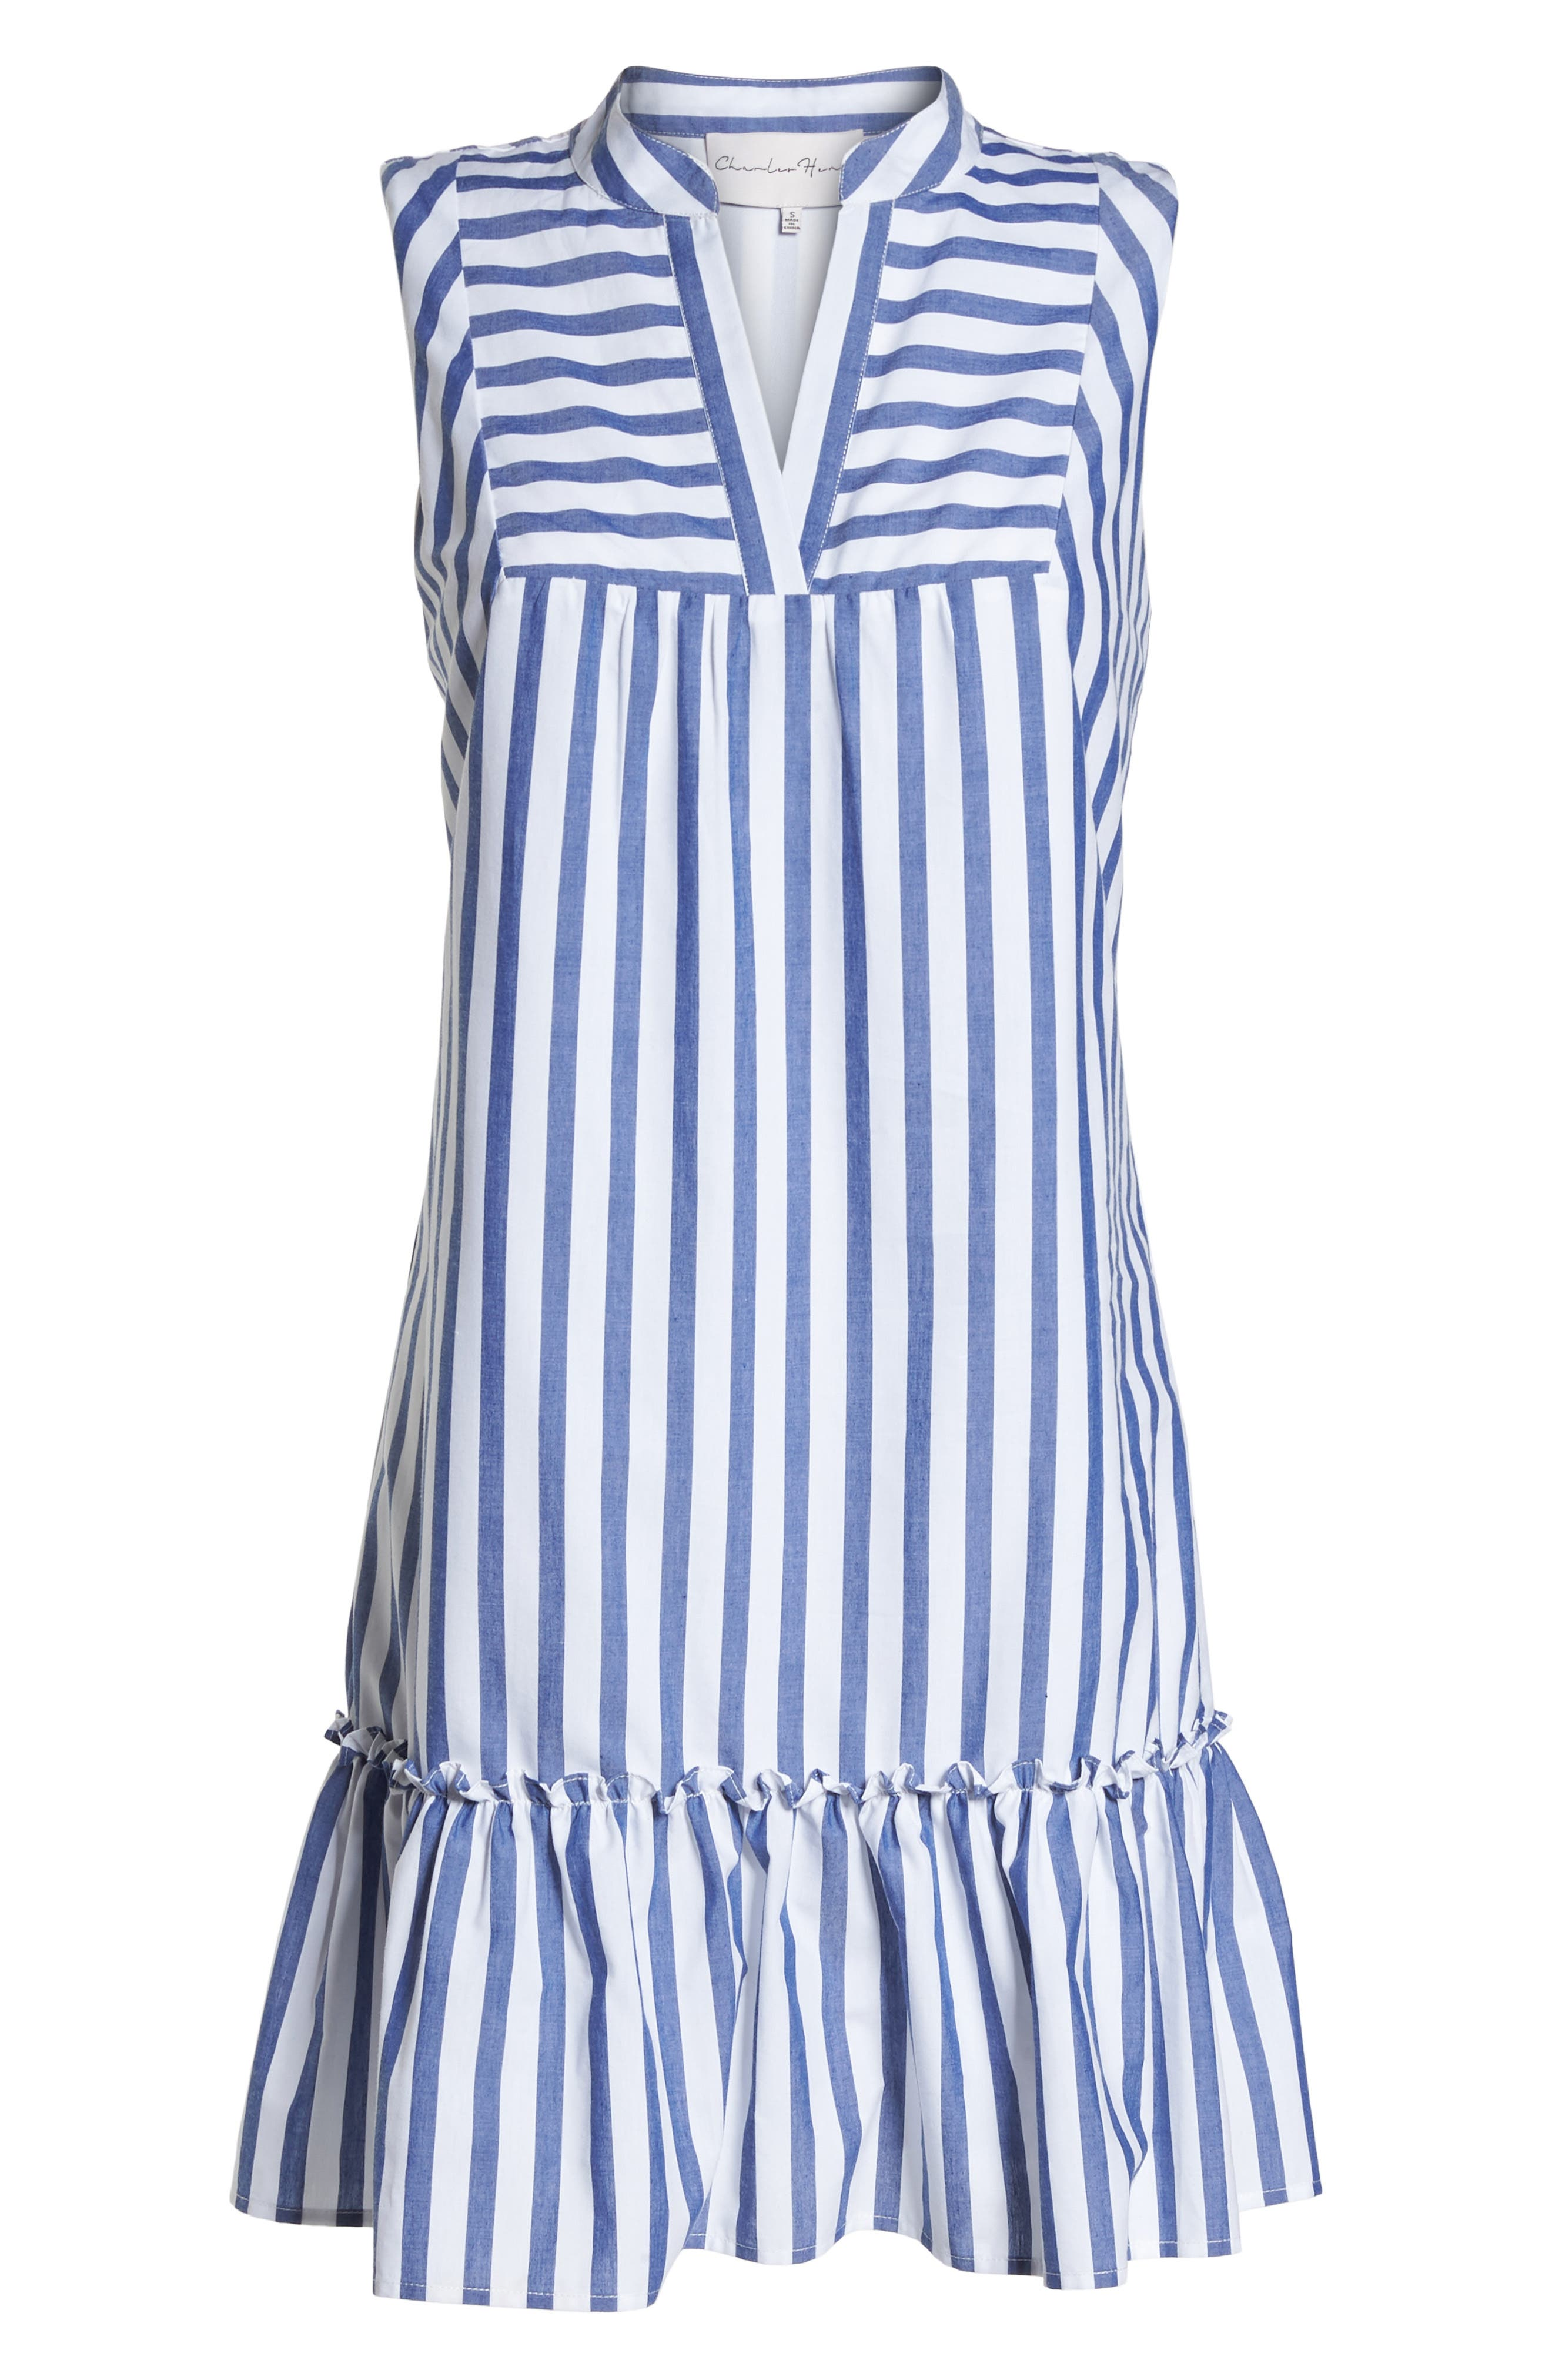 Stripe Bib Front Sleeveless Shift Dress,                             Alternate thumbnail 7, color,                             465